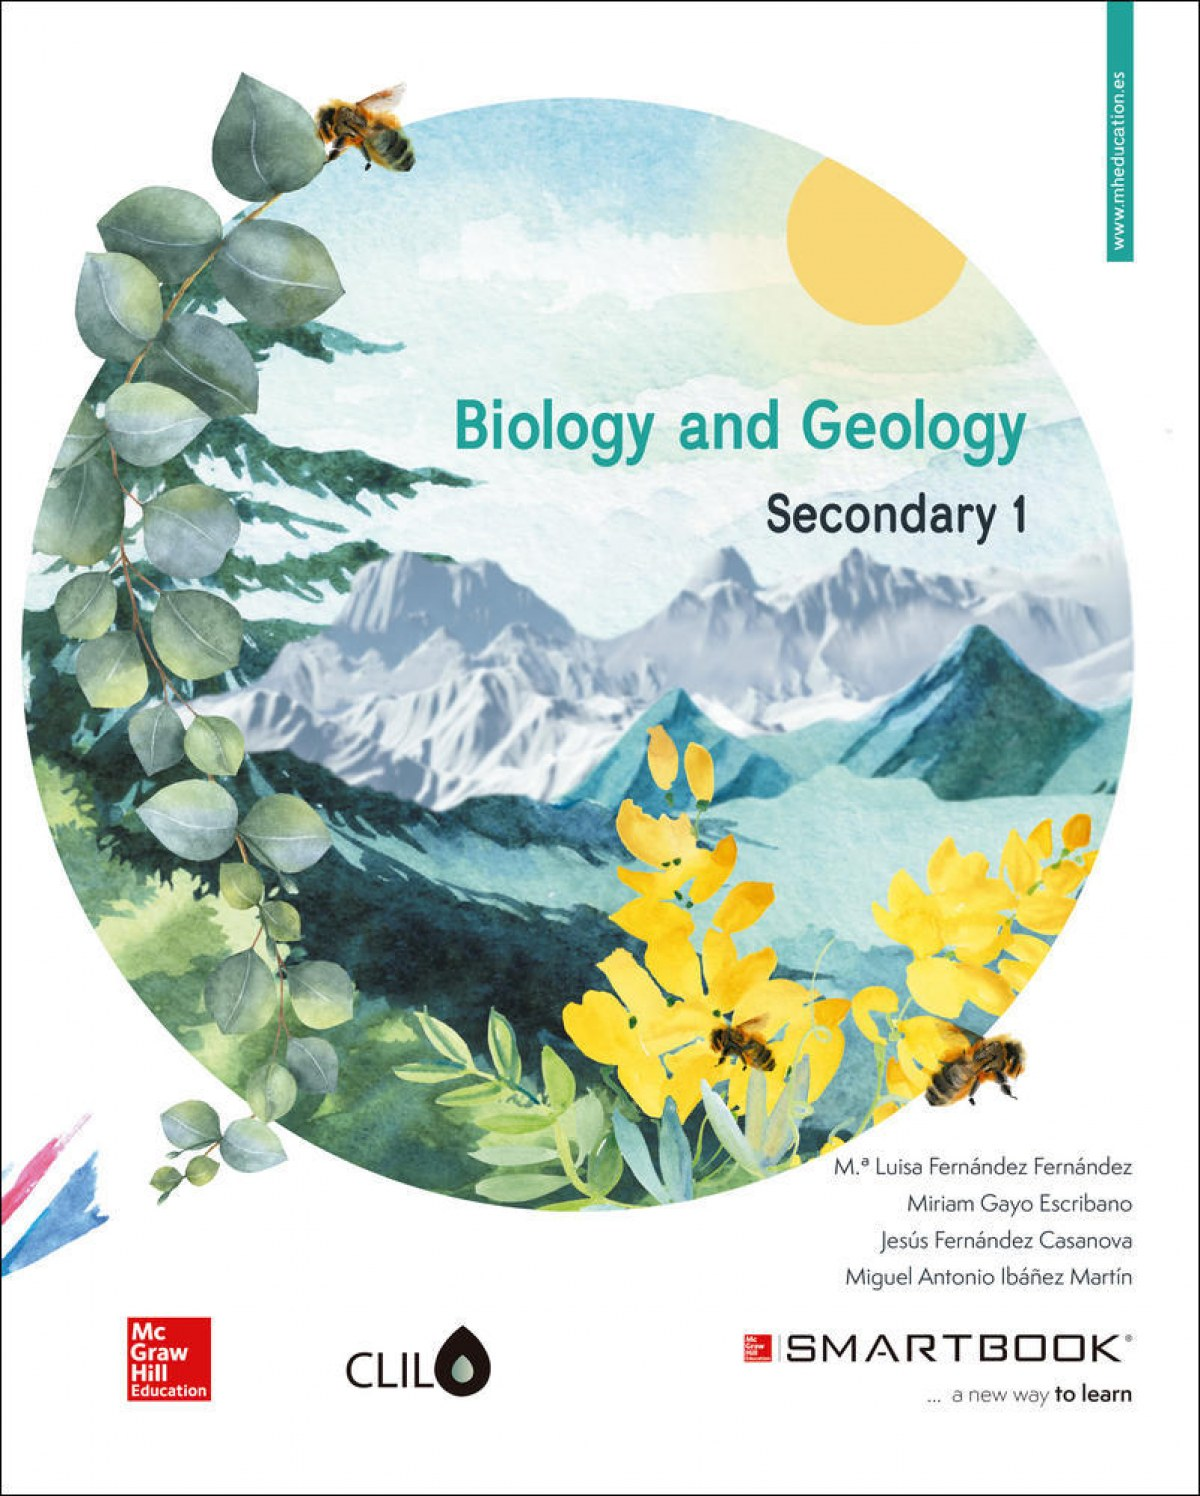 BIOLOGY AND GEOLOGY 1ºESO. (+SMARTBOOK). NOVA 2019